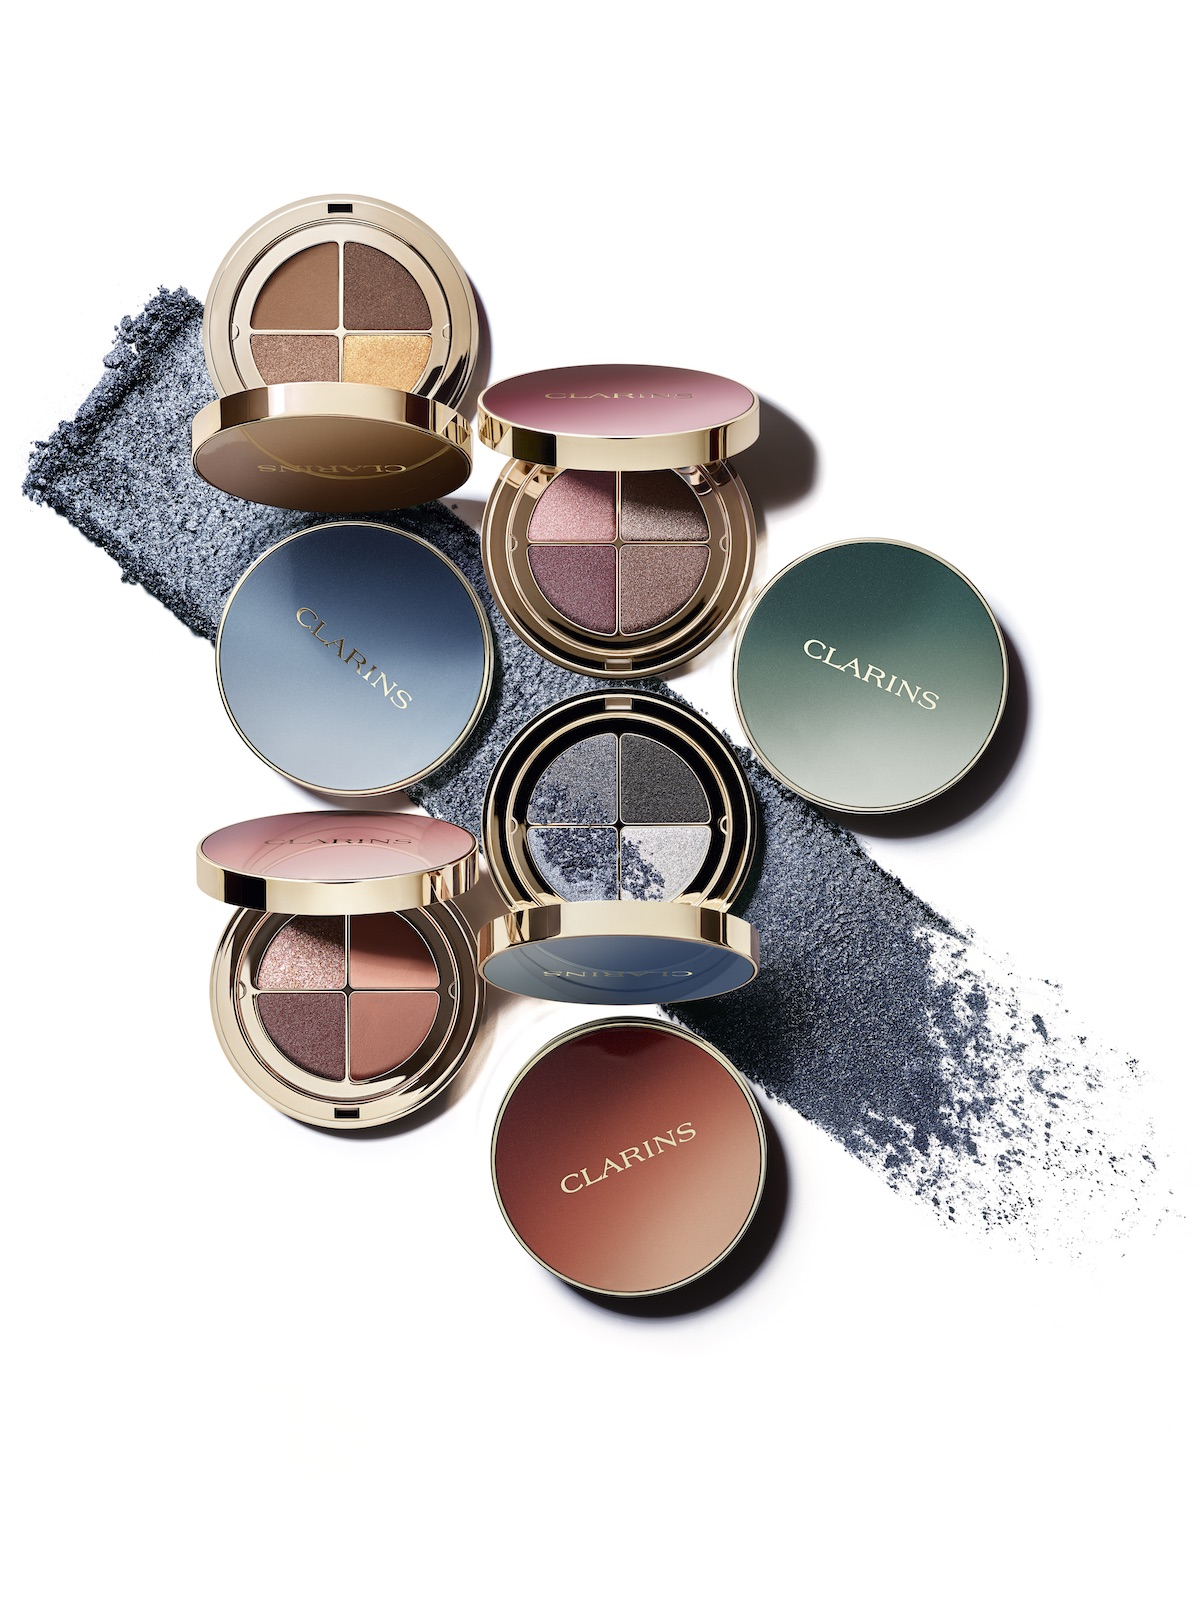 Ombre 4 Couleurs, Clarins.